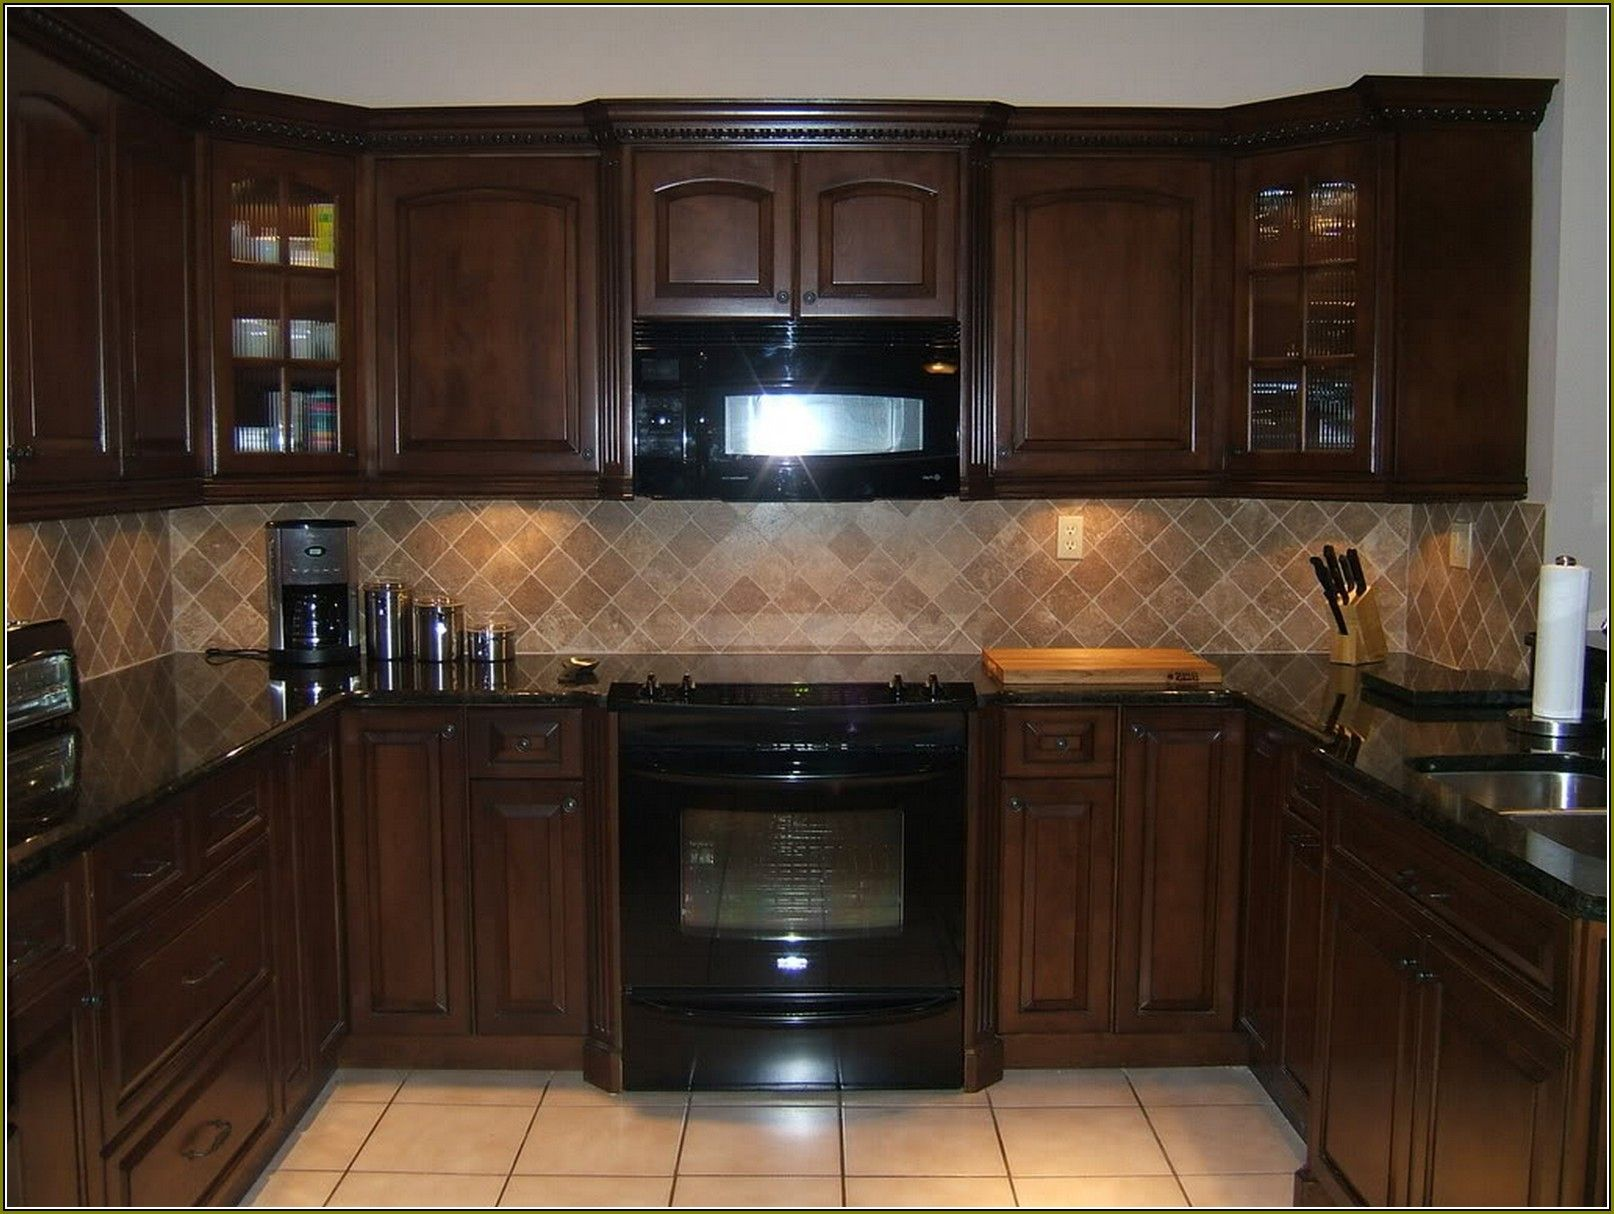 Brown Kitchen Cabinets With White Appliances Cream Colored Kitchen Cabinets With Black Appliances